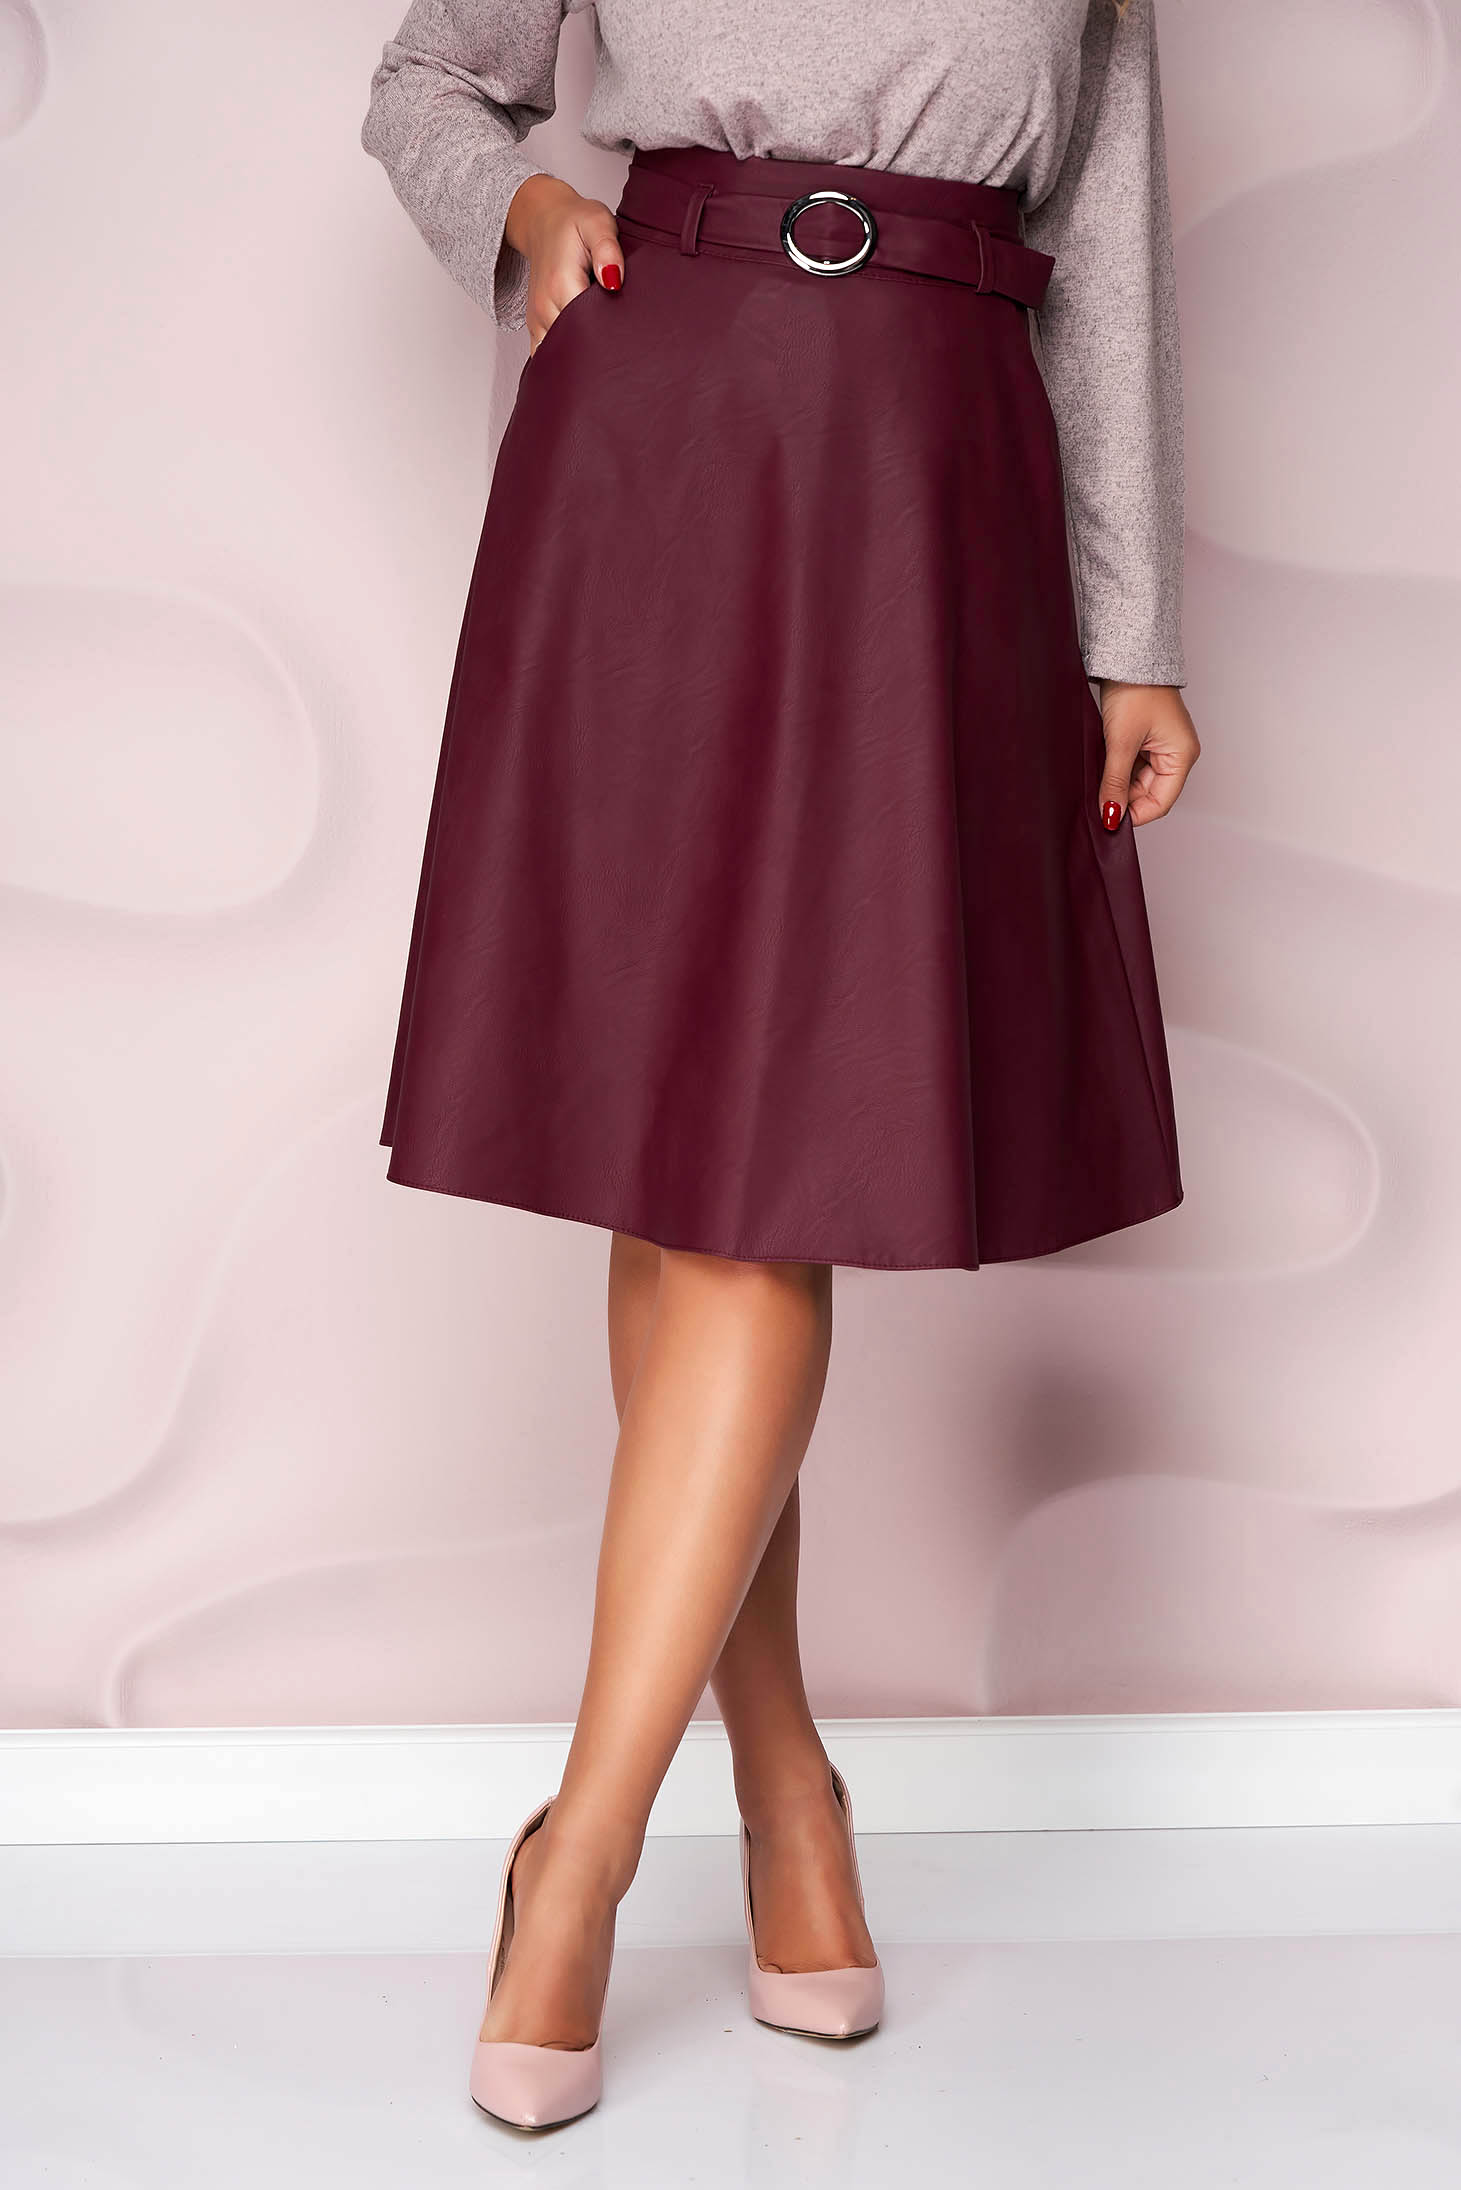 Burgundy skirt from ecological leather cloche office faux leather belt from elastic fabric